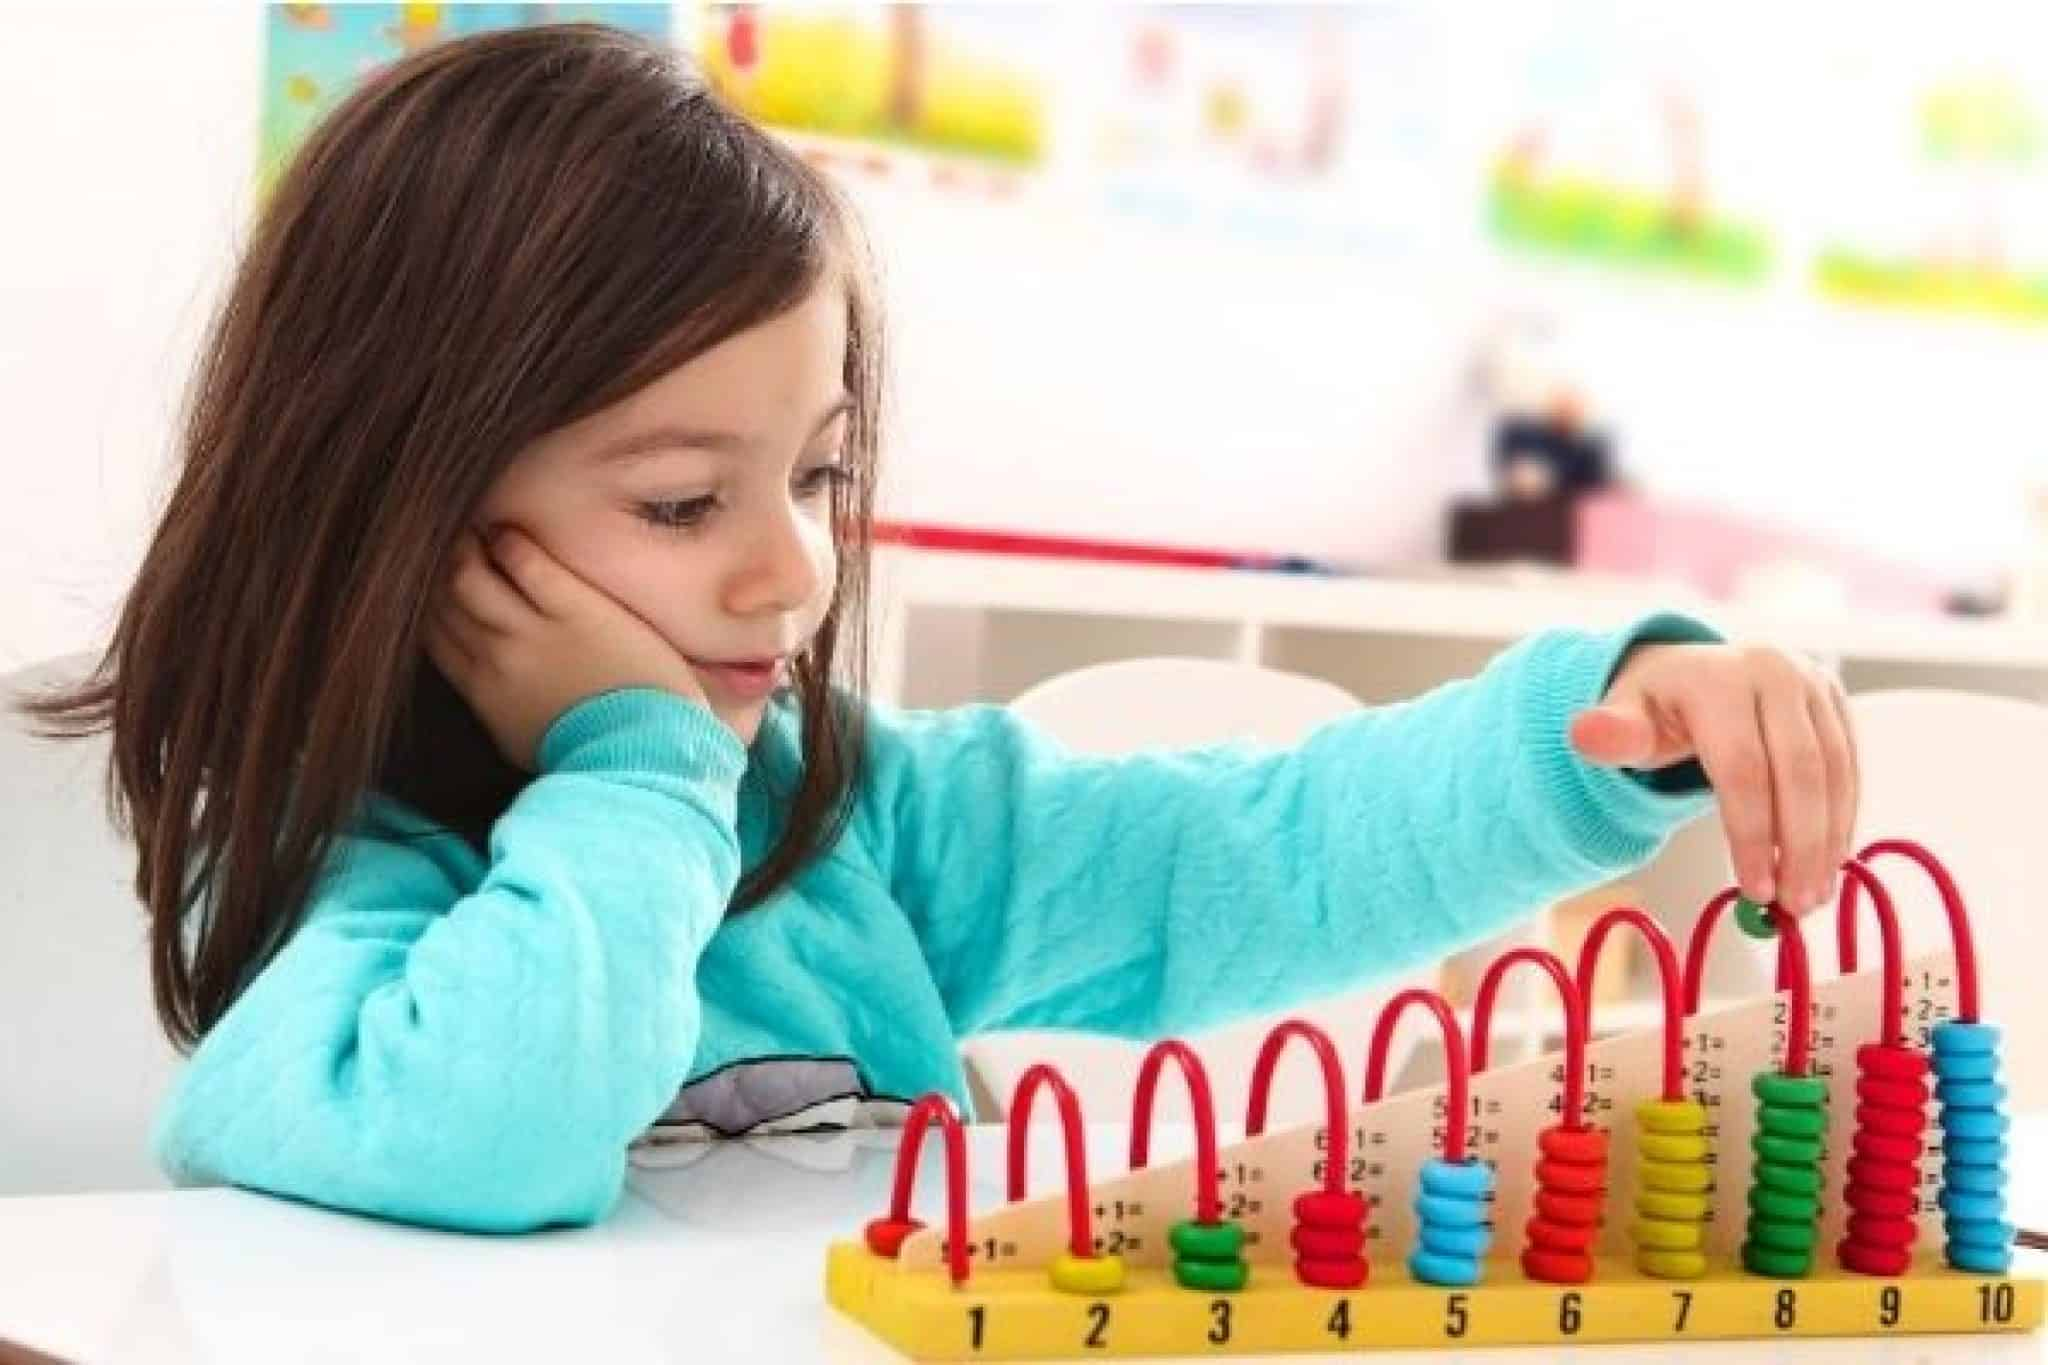 Preschooler playing with educational toy